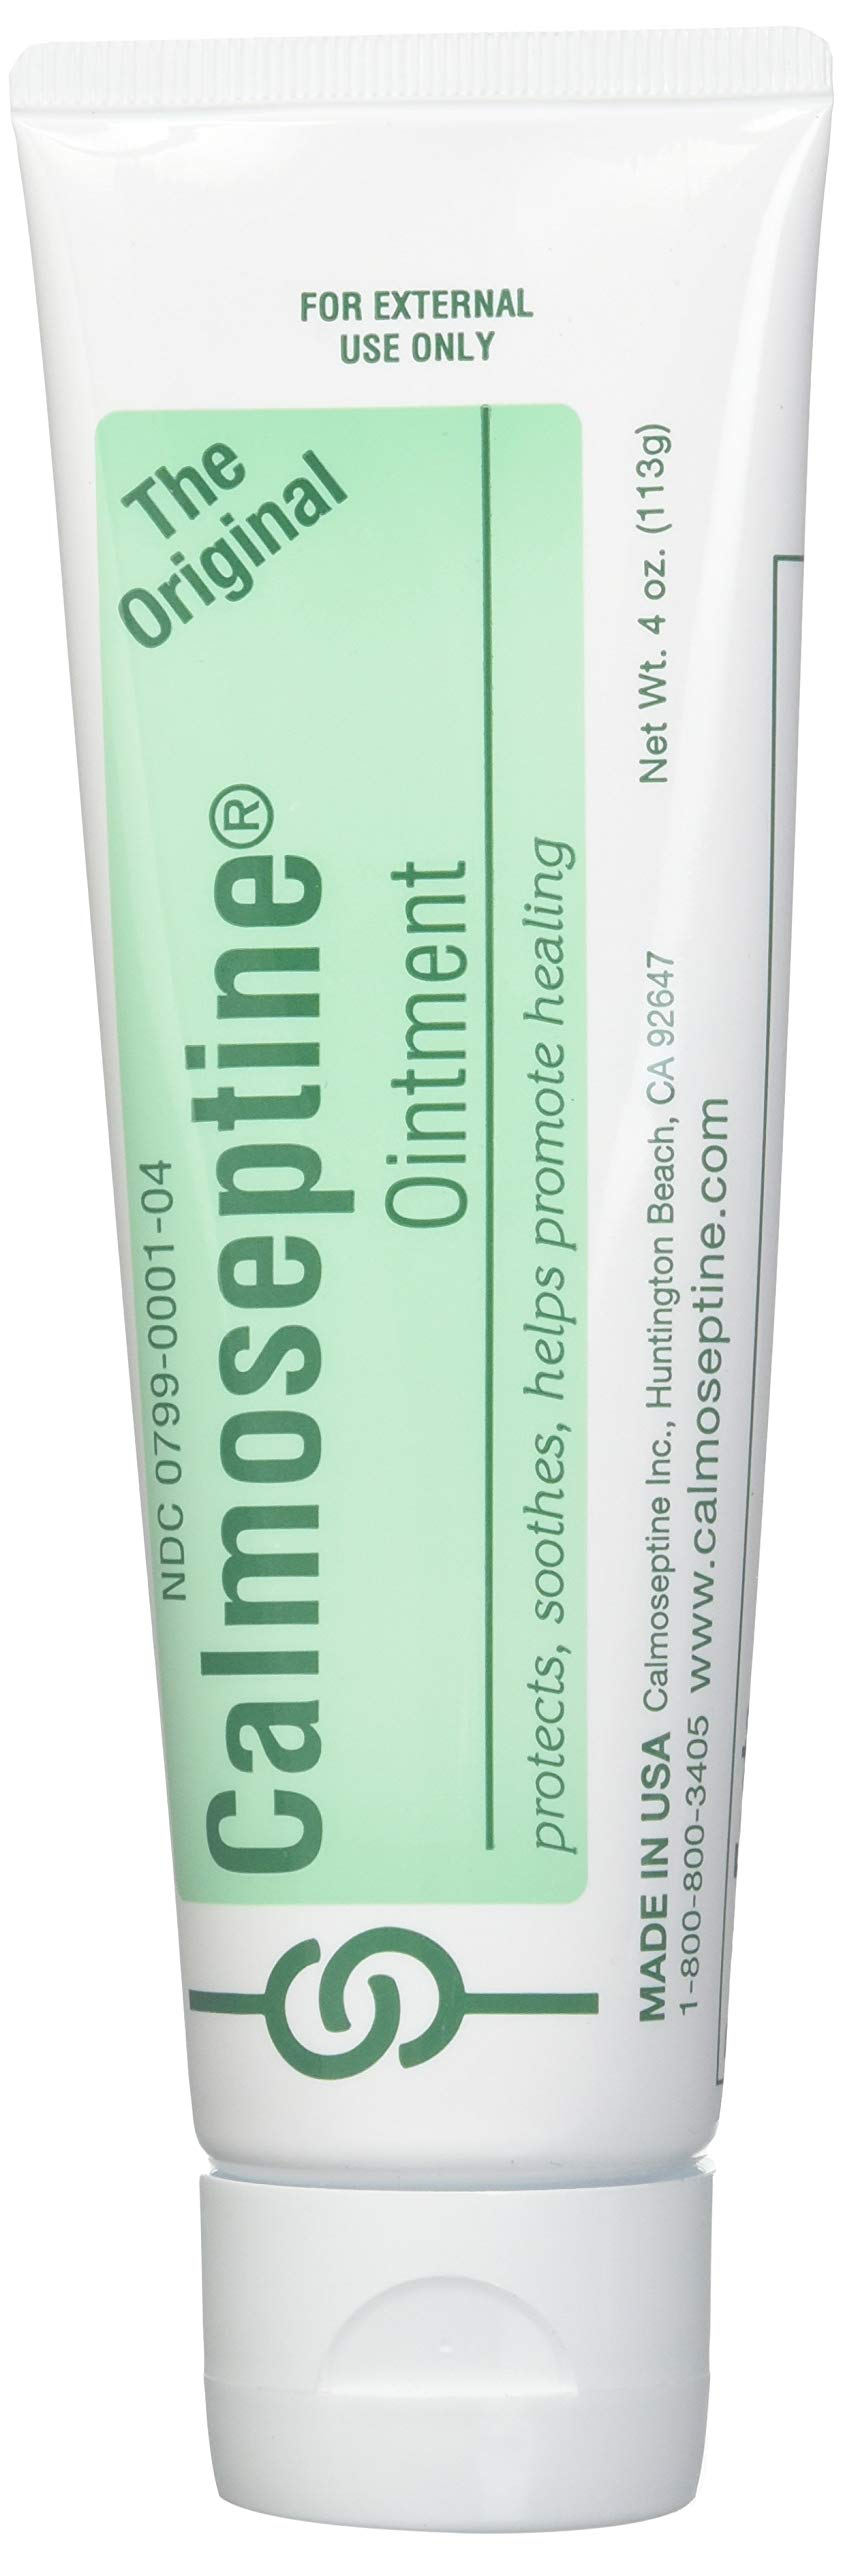 Calmoseptine Ointment 4 oz (Pack of 8) by Calmoseptine